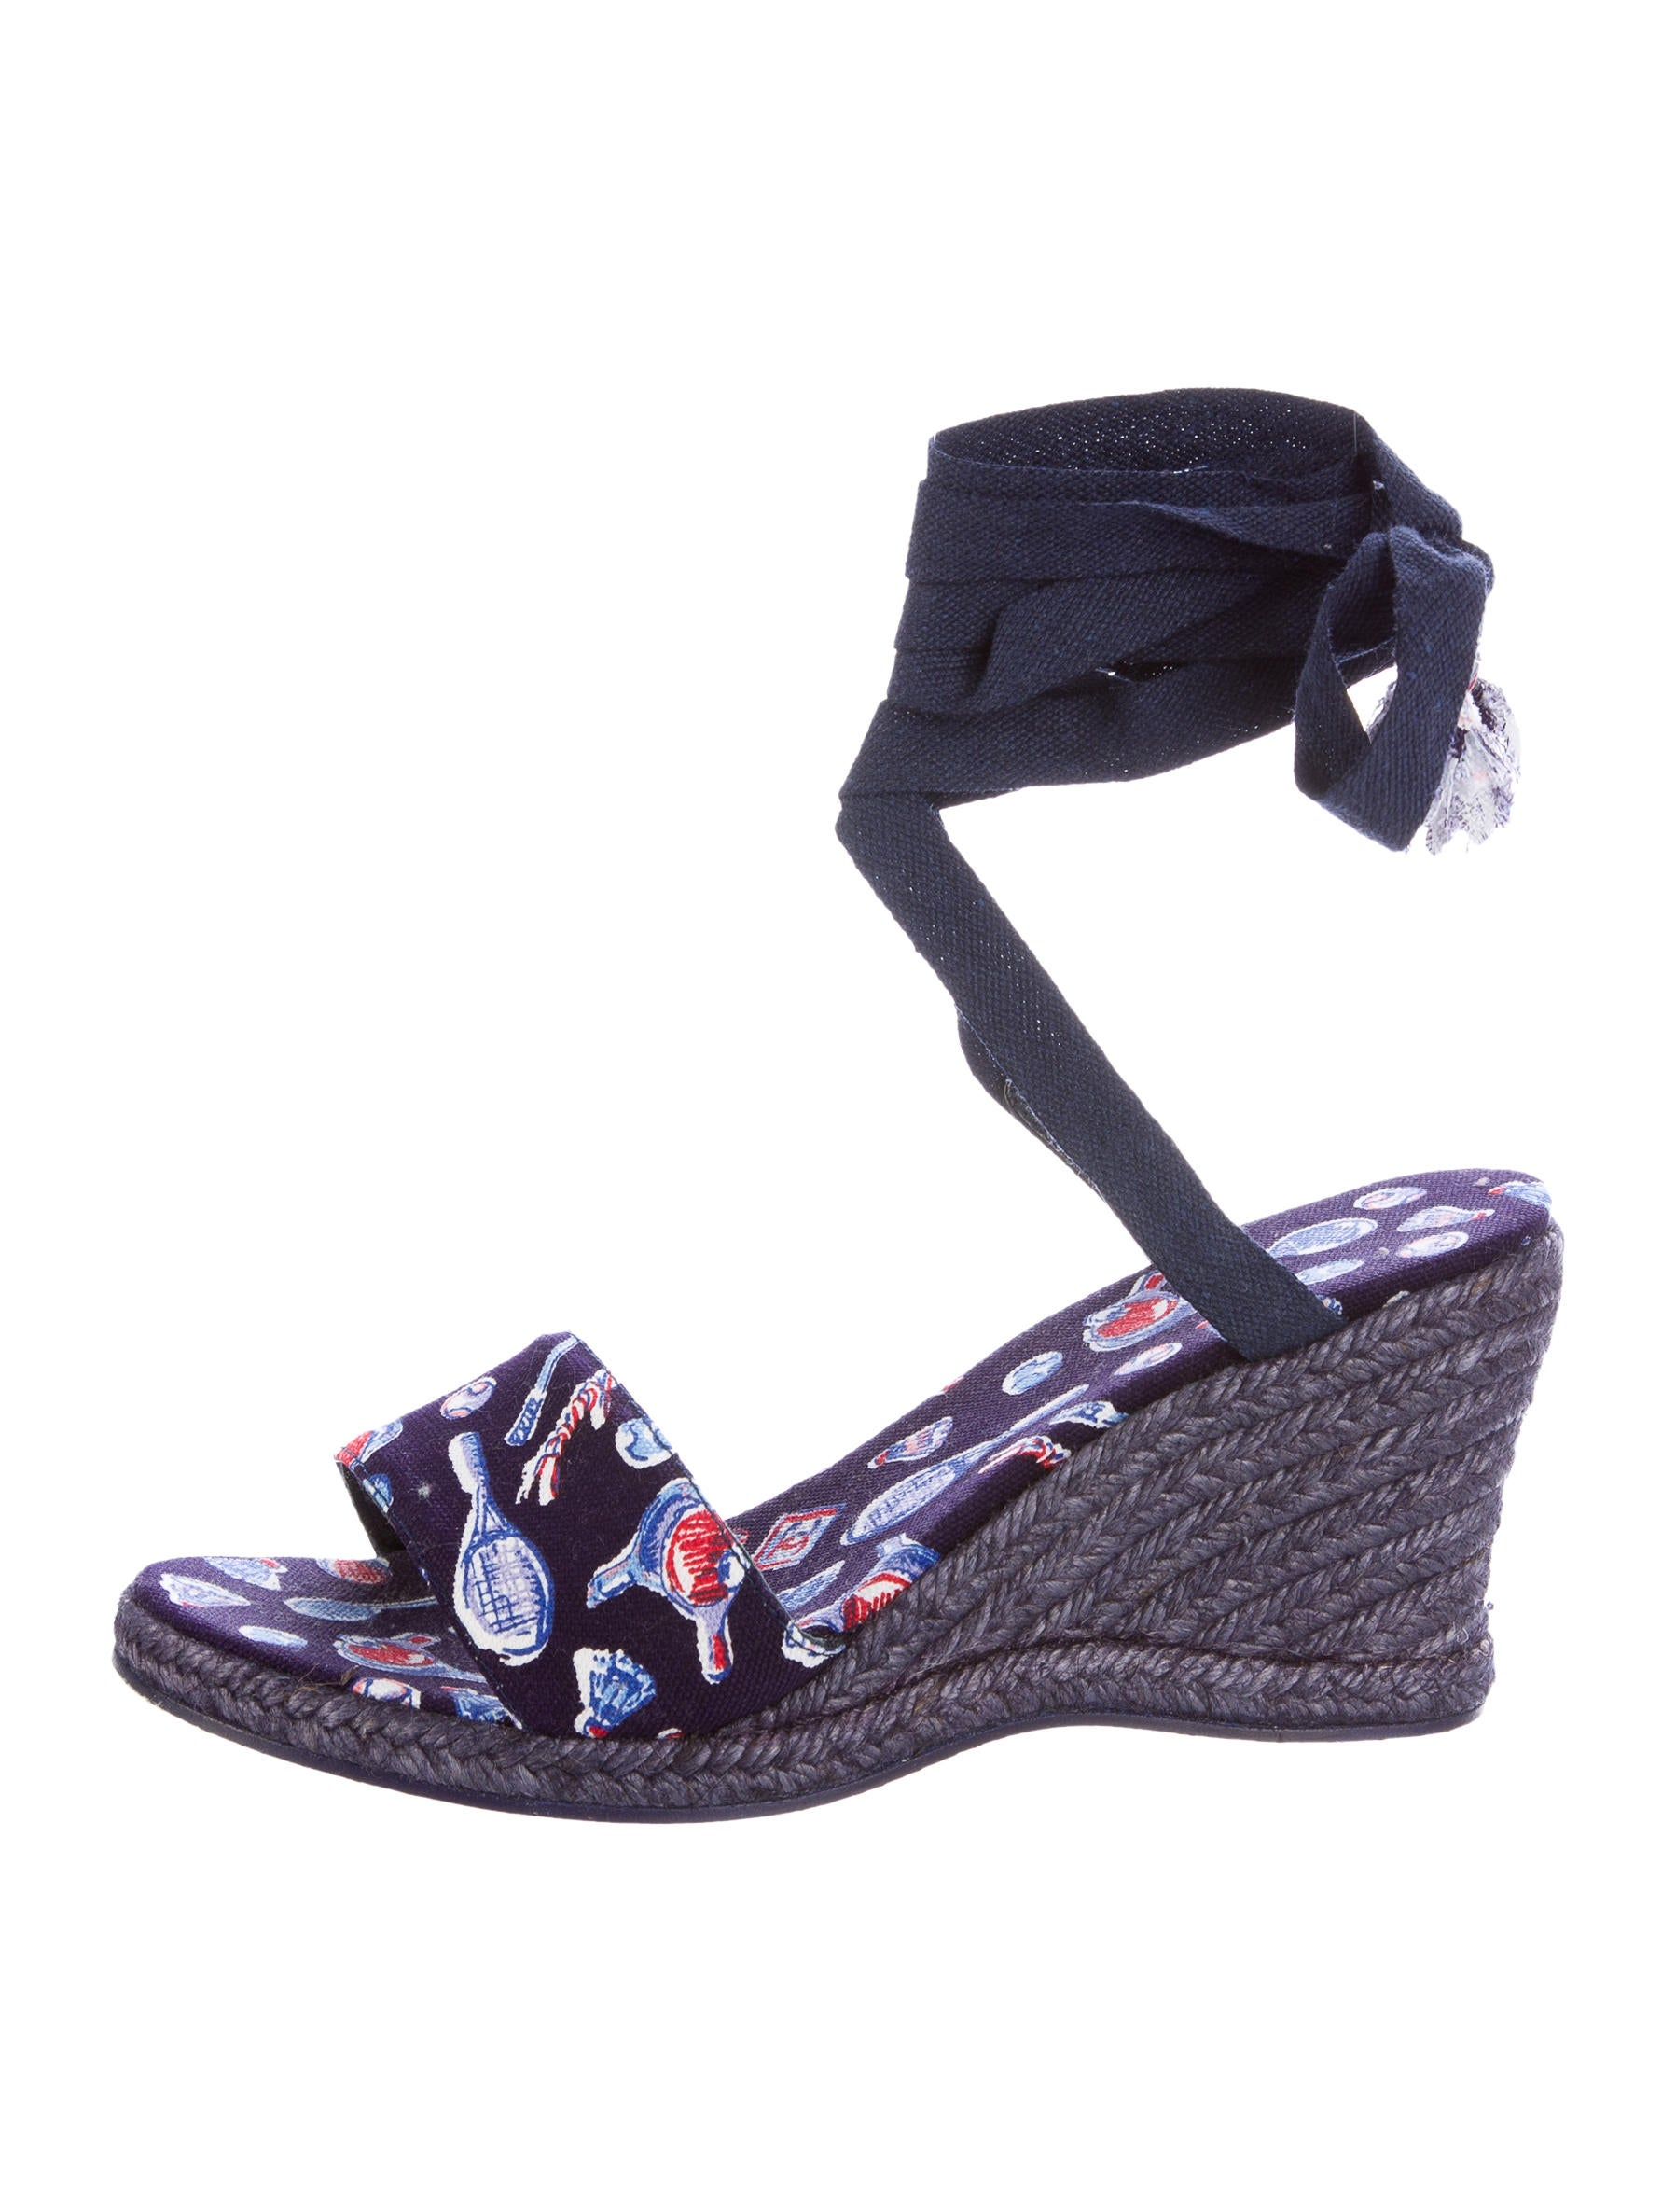 chanel espadrille wedge sandals shoes cha160043 the